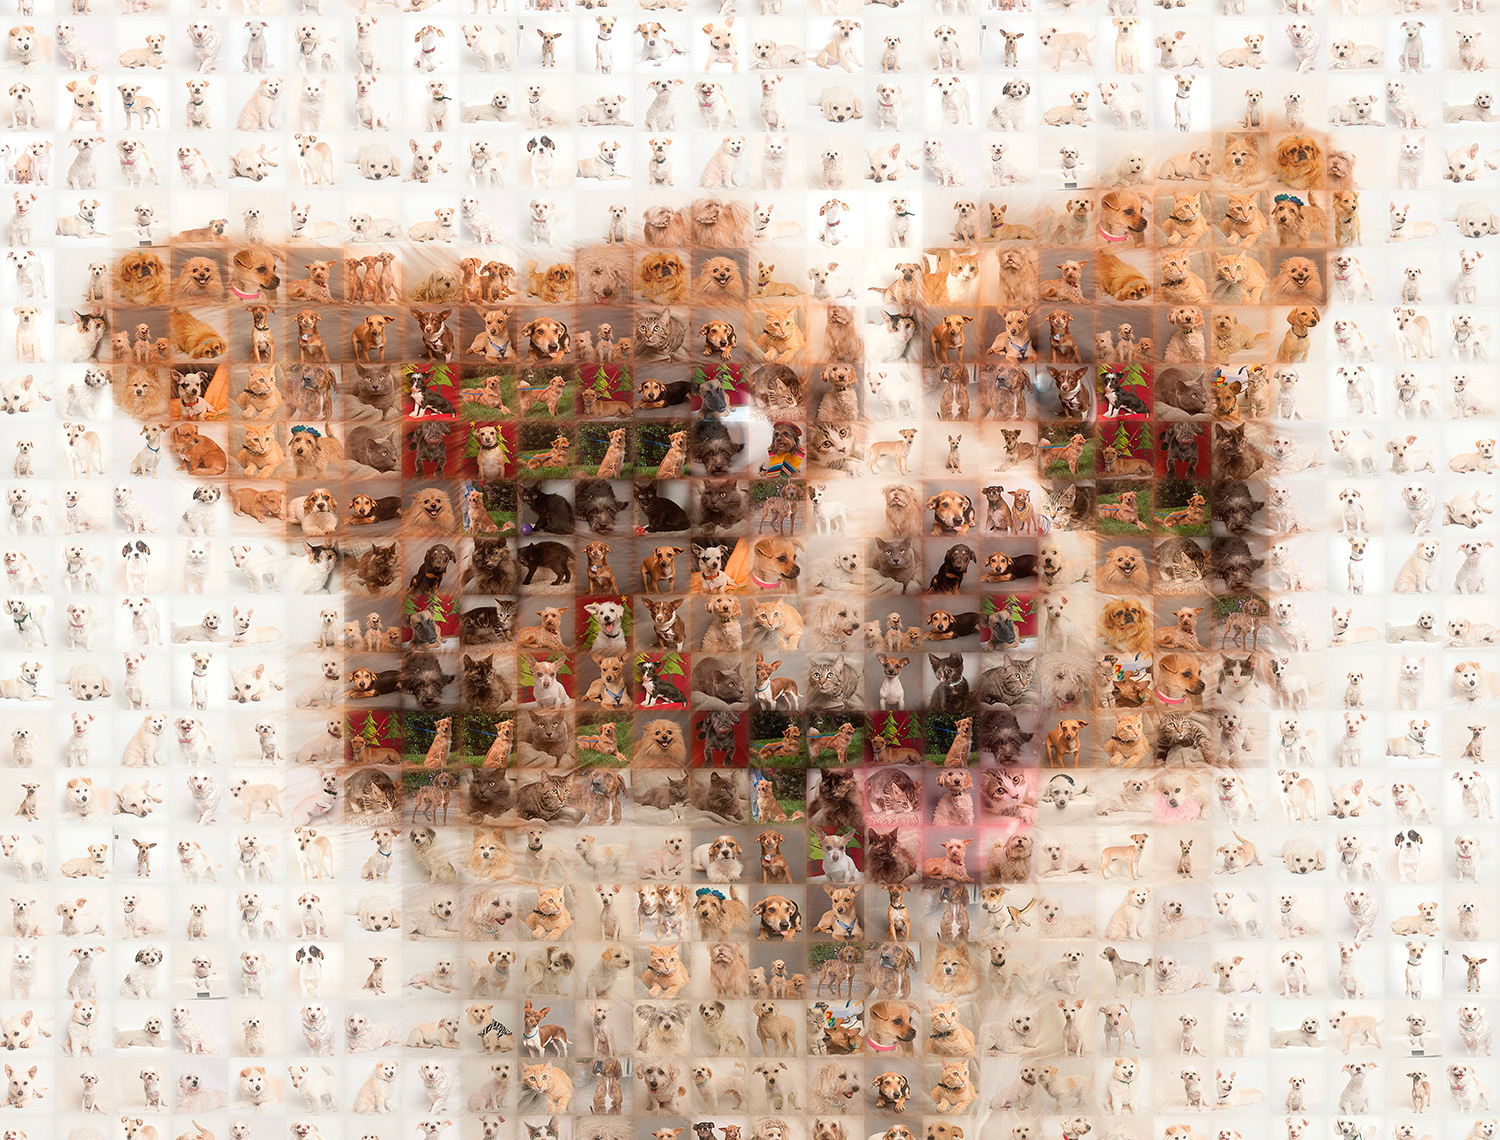 mosaic dog head photo